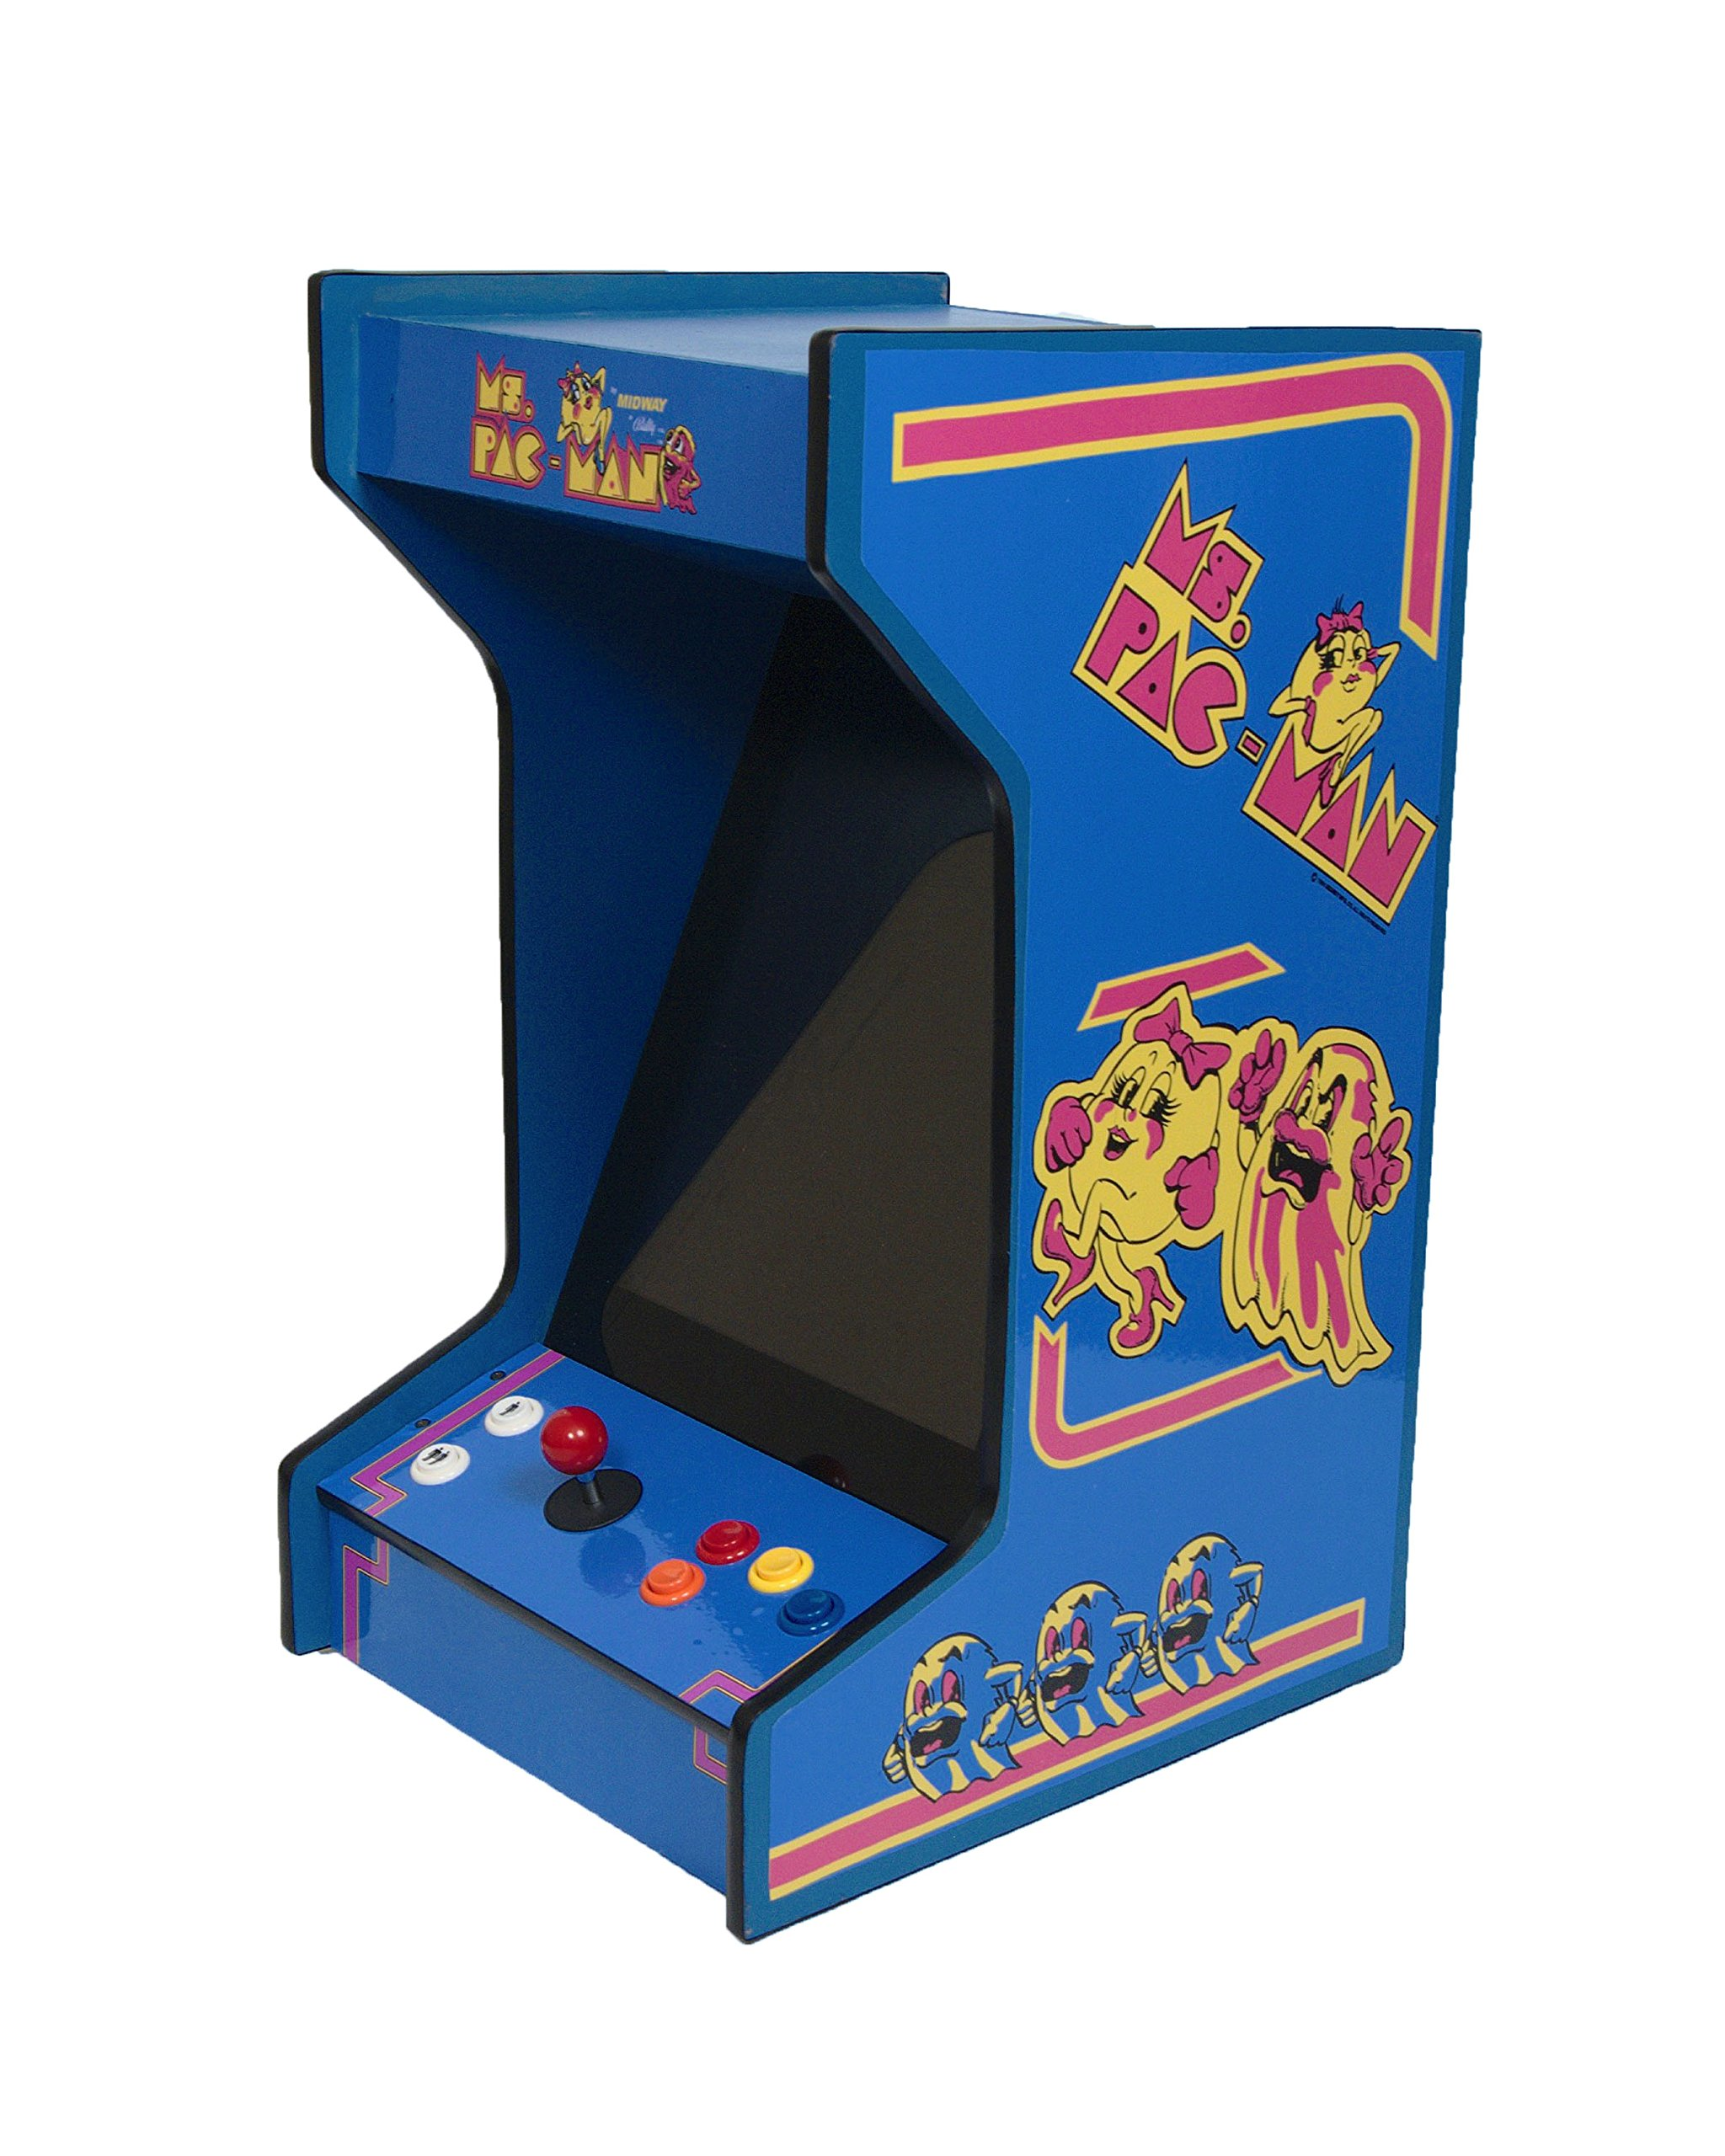 Tabletop/Bartop Arcade Machine With 412 Games by Suncoast Arcade